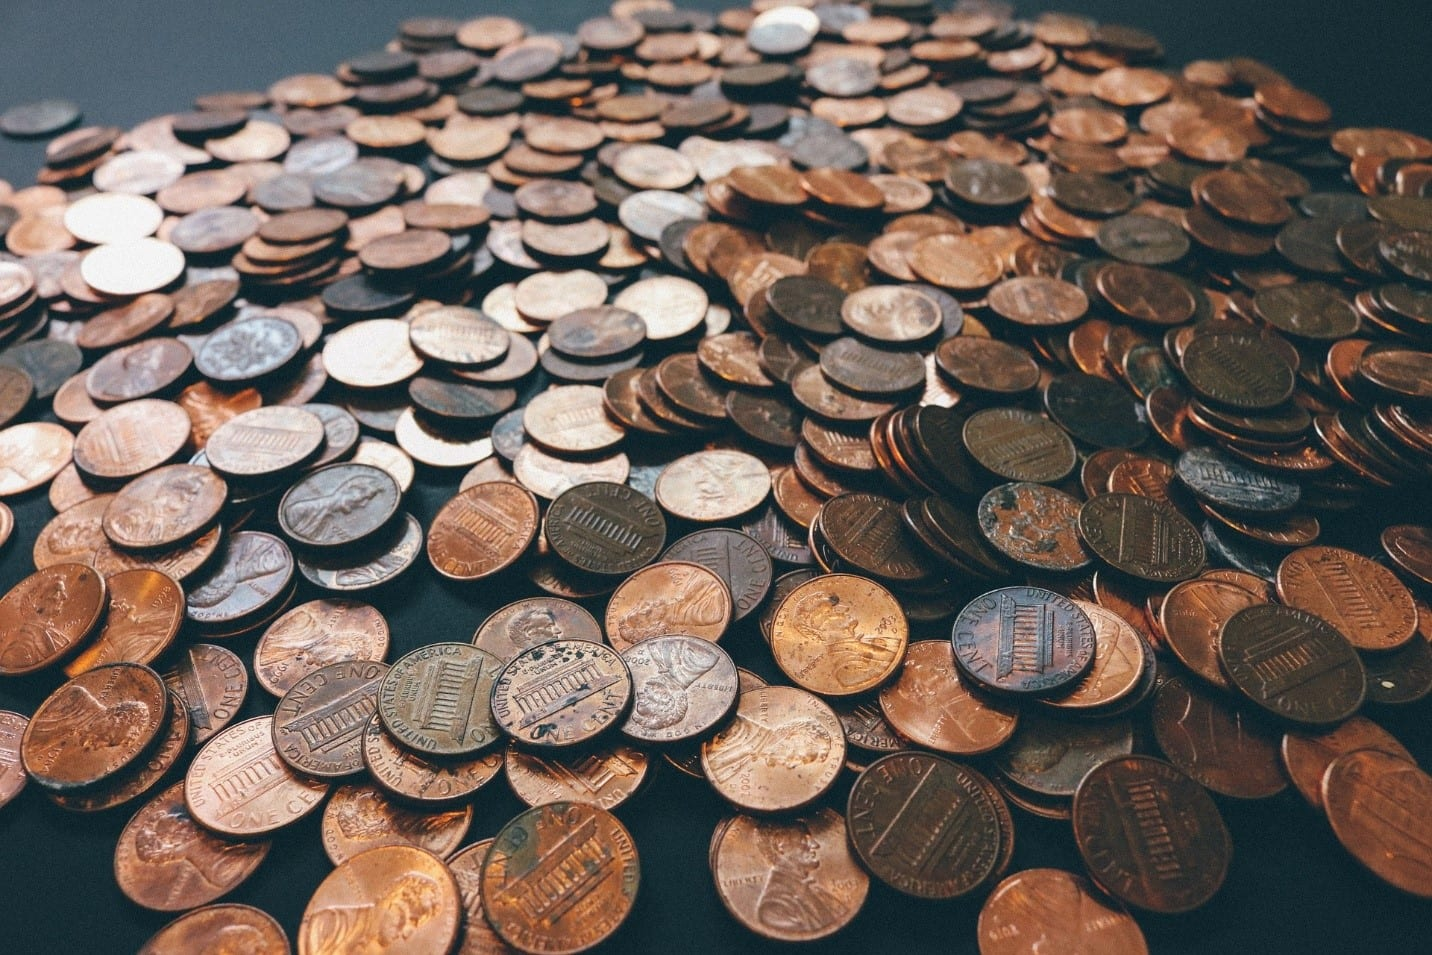 Coins scattered on a surface